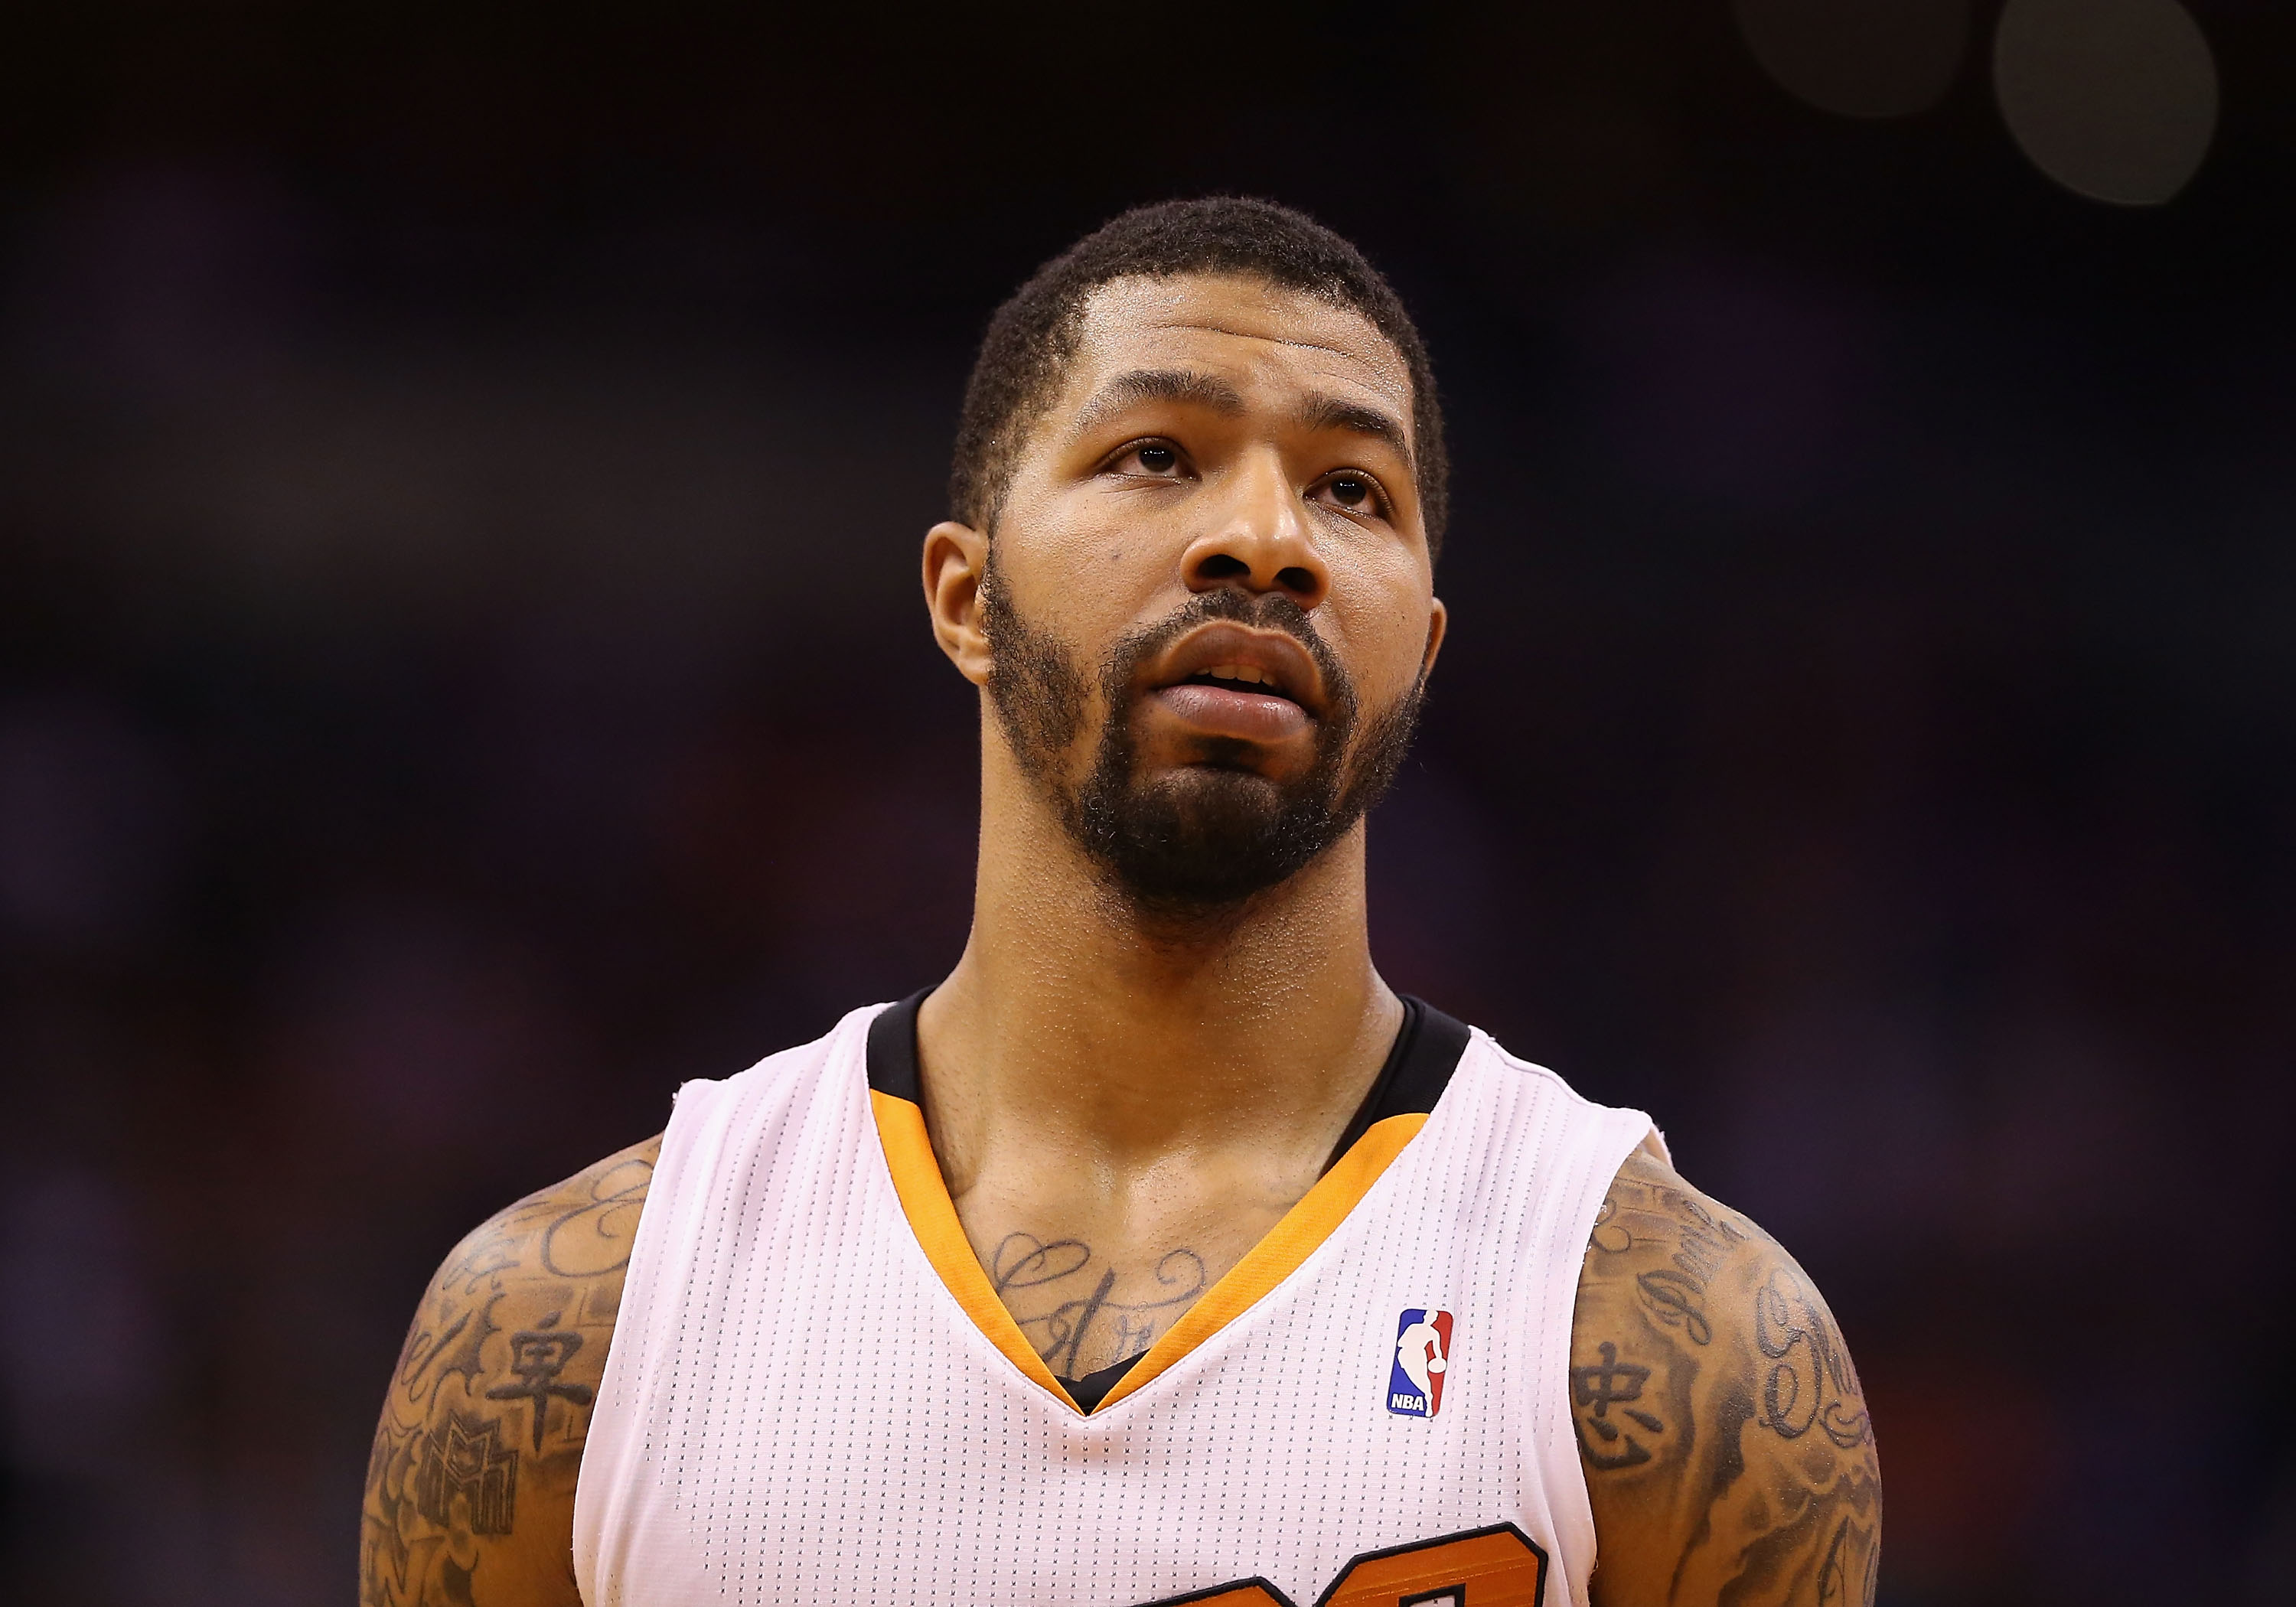 What did Markieff Morris ride away on after being traded from the Suns?